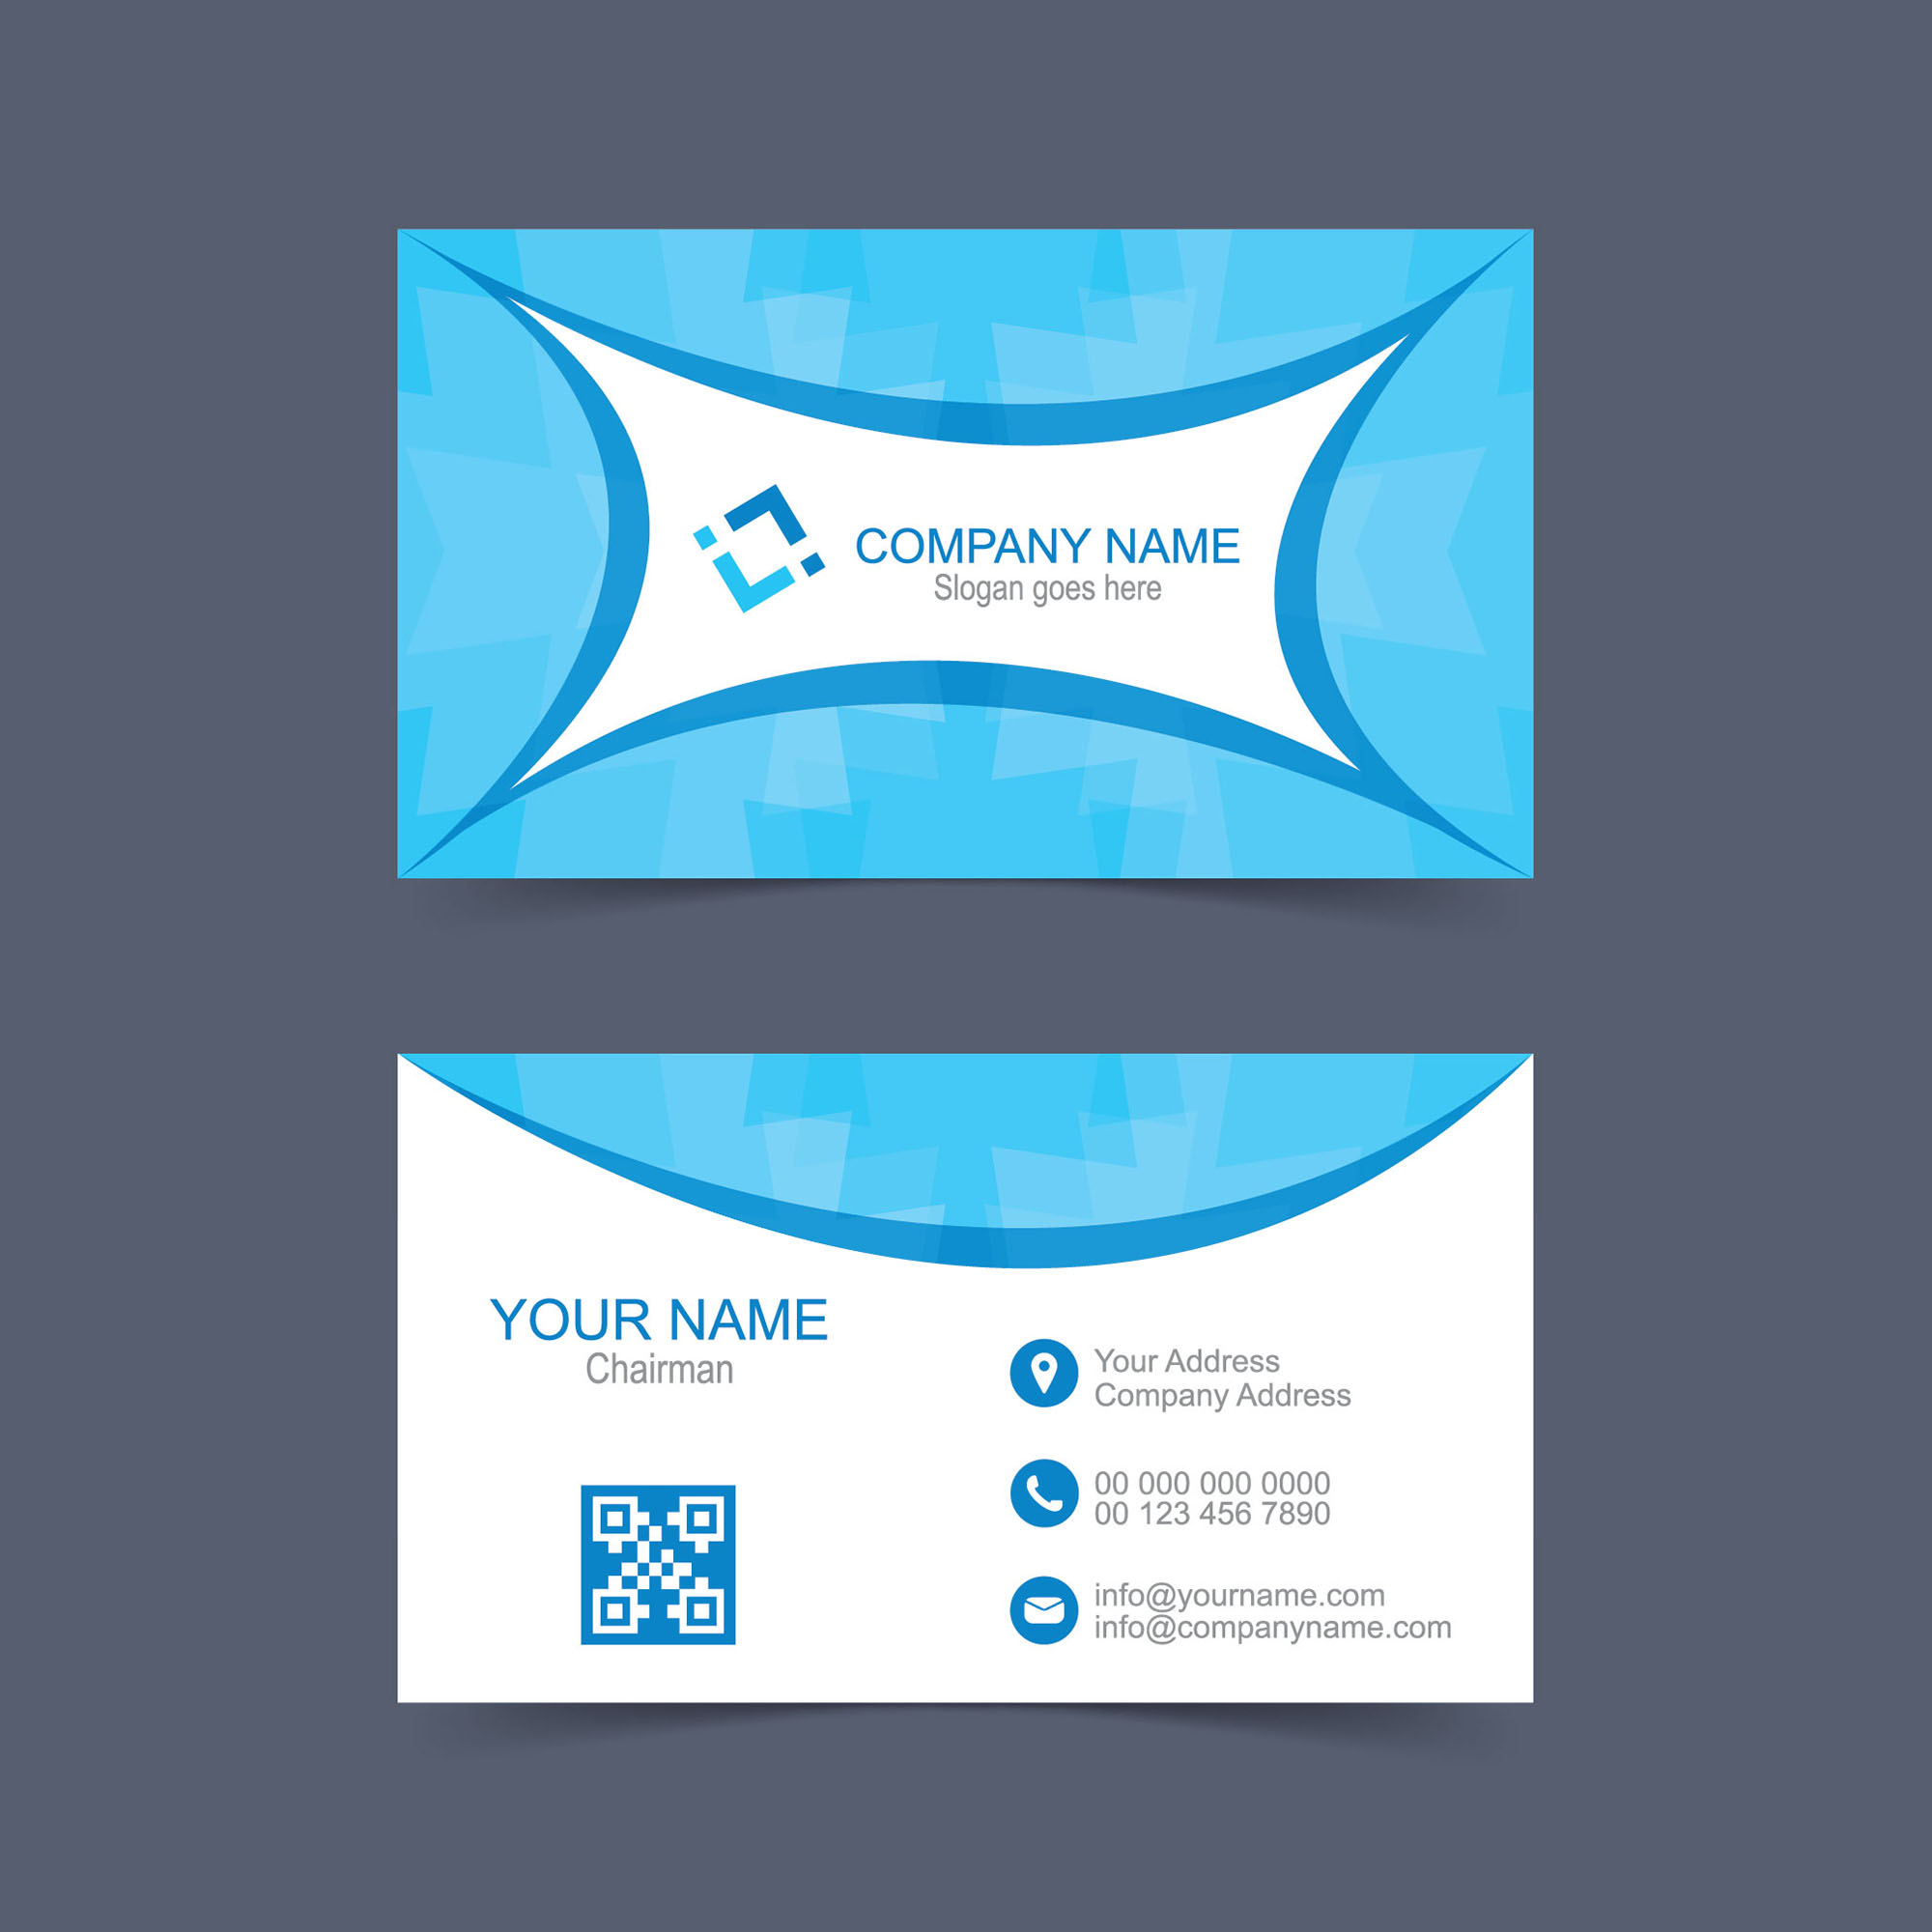 Name Card Design Template Free Download Wisxicom - Name card template